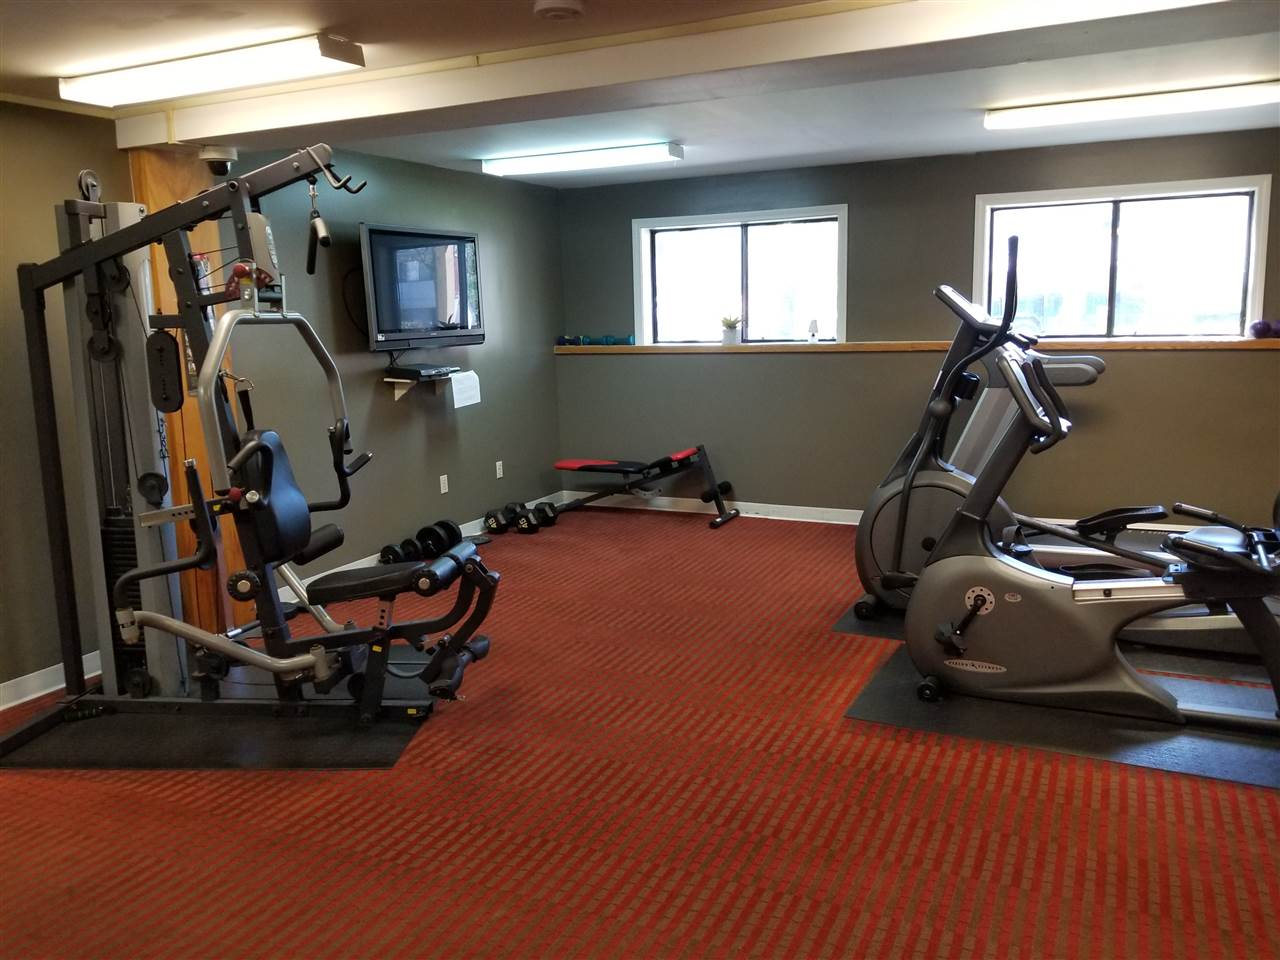 Exercise Area in Community Center